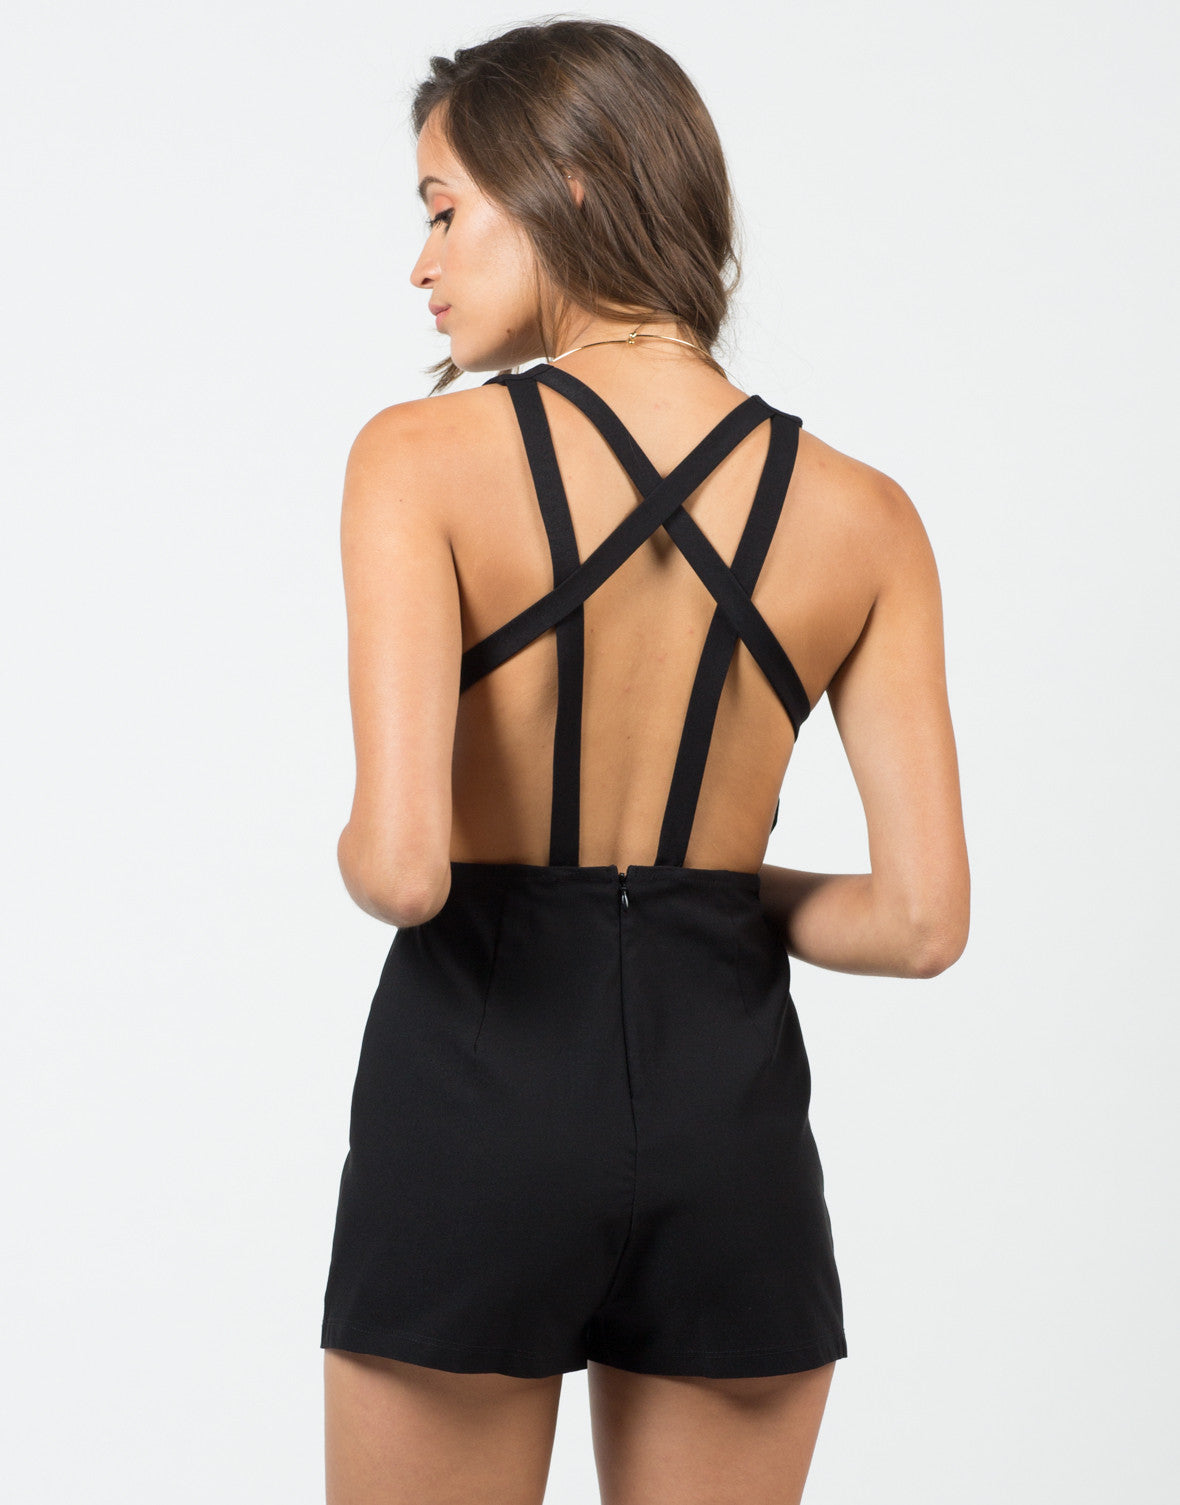 Back View of Strappy Deep Sweetheart Romper